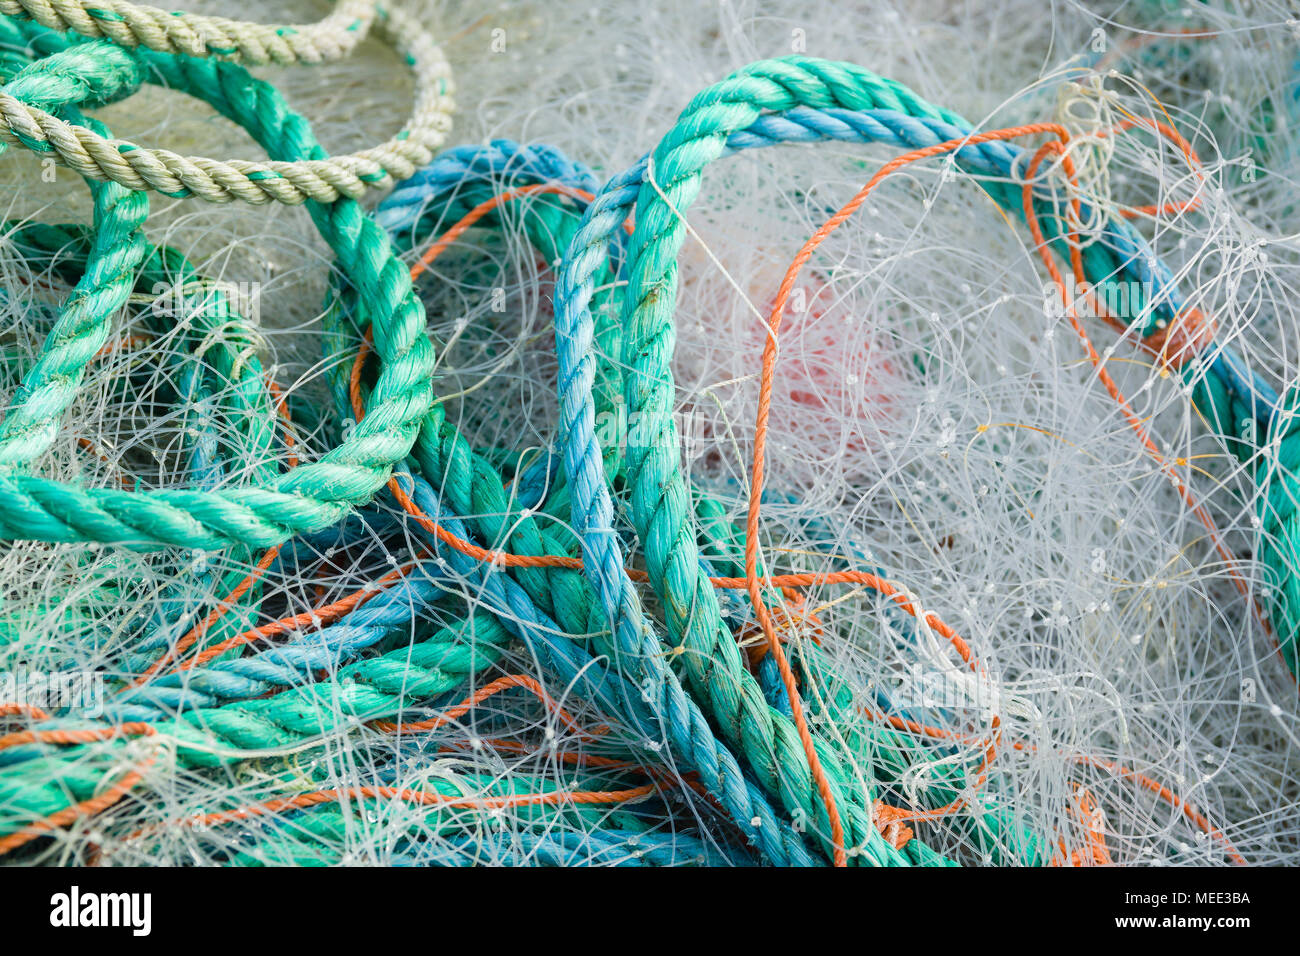 A tangled mess of fishing nets plastic rope and other debris washed up on a Cornish beach ideal for an ecological hazard or pollution concept - Stock Image